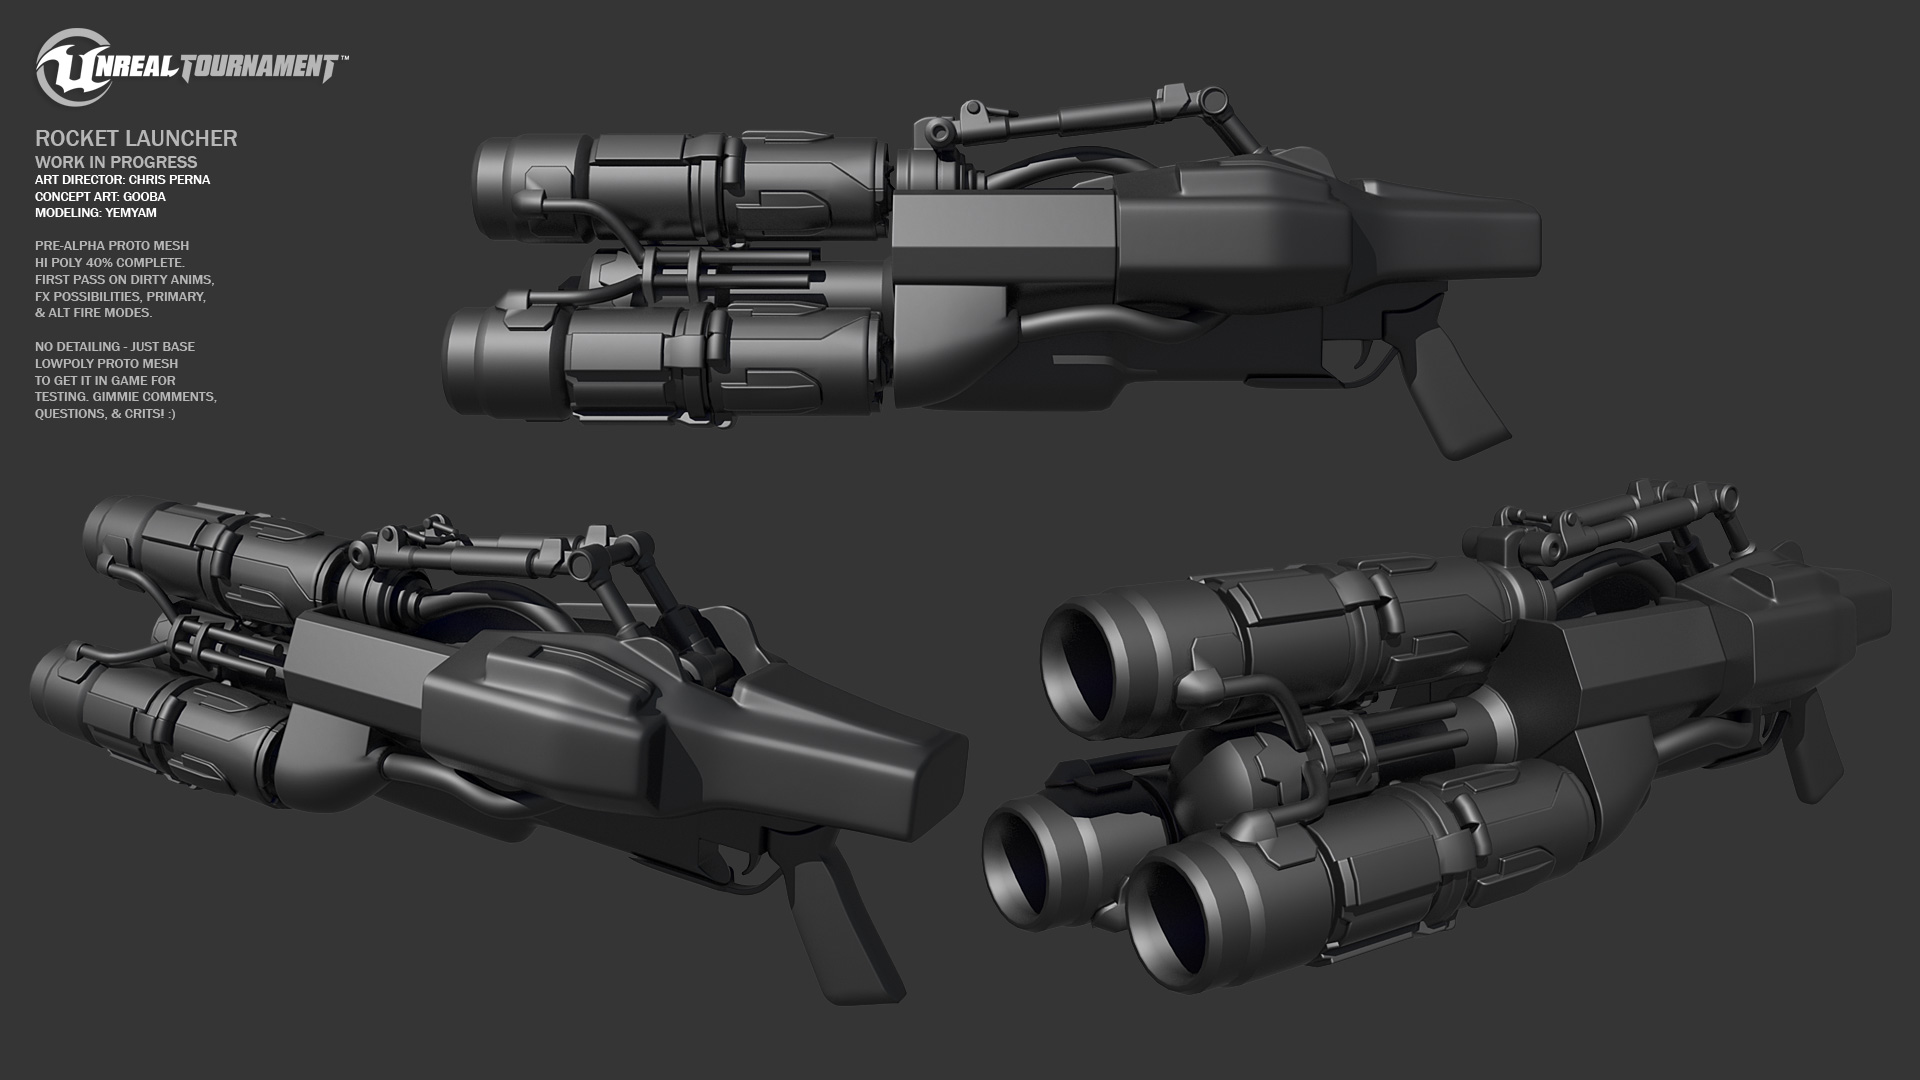 First Rocket Launcher WIP Images - Unreal Carnage